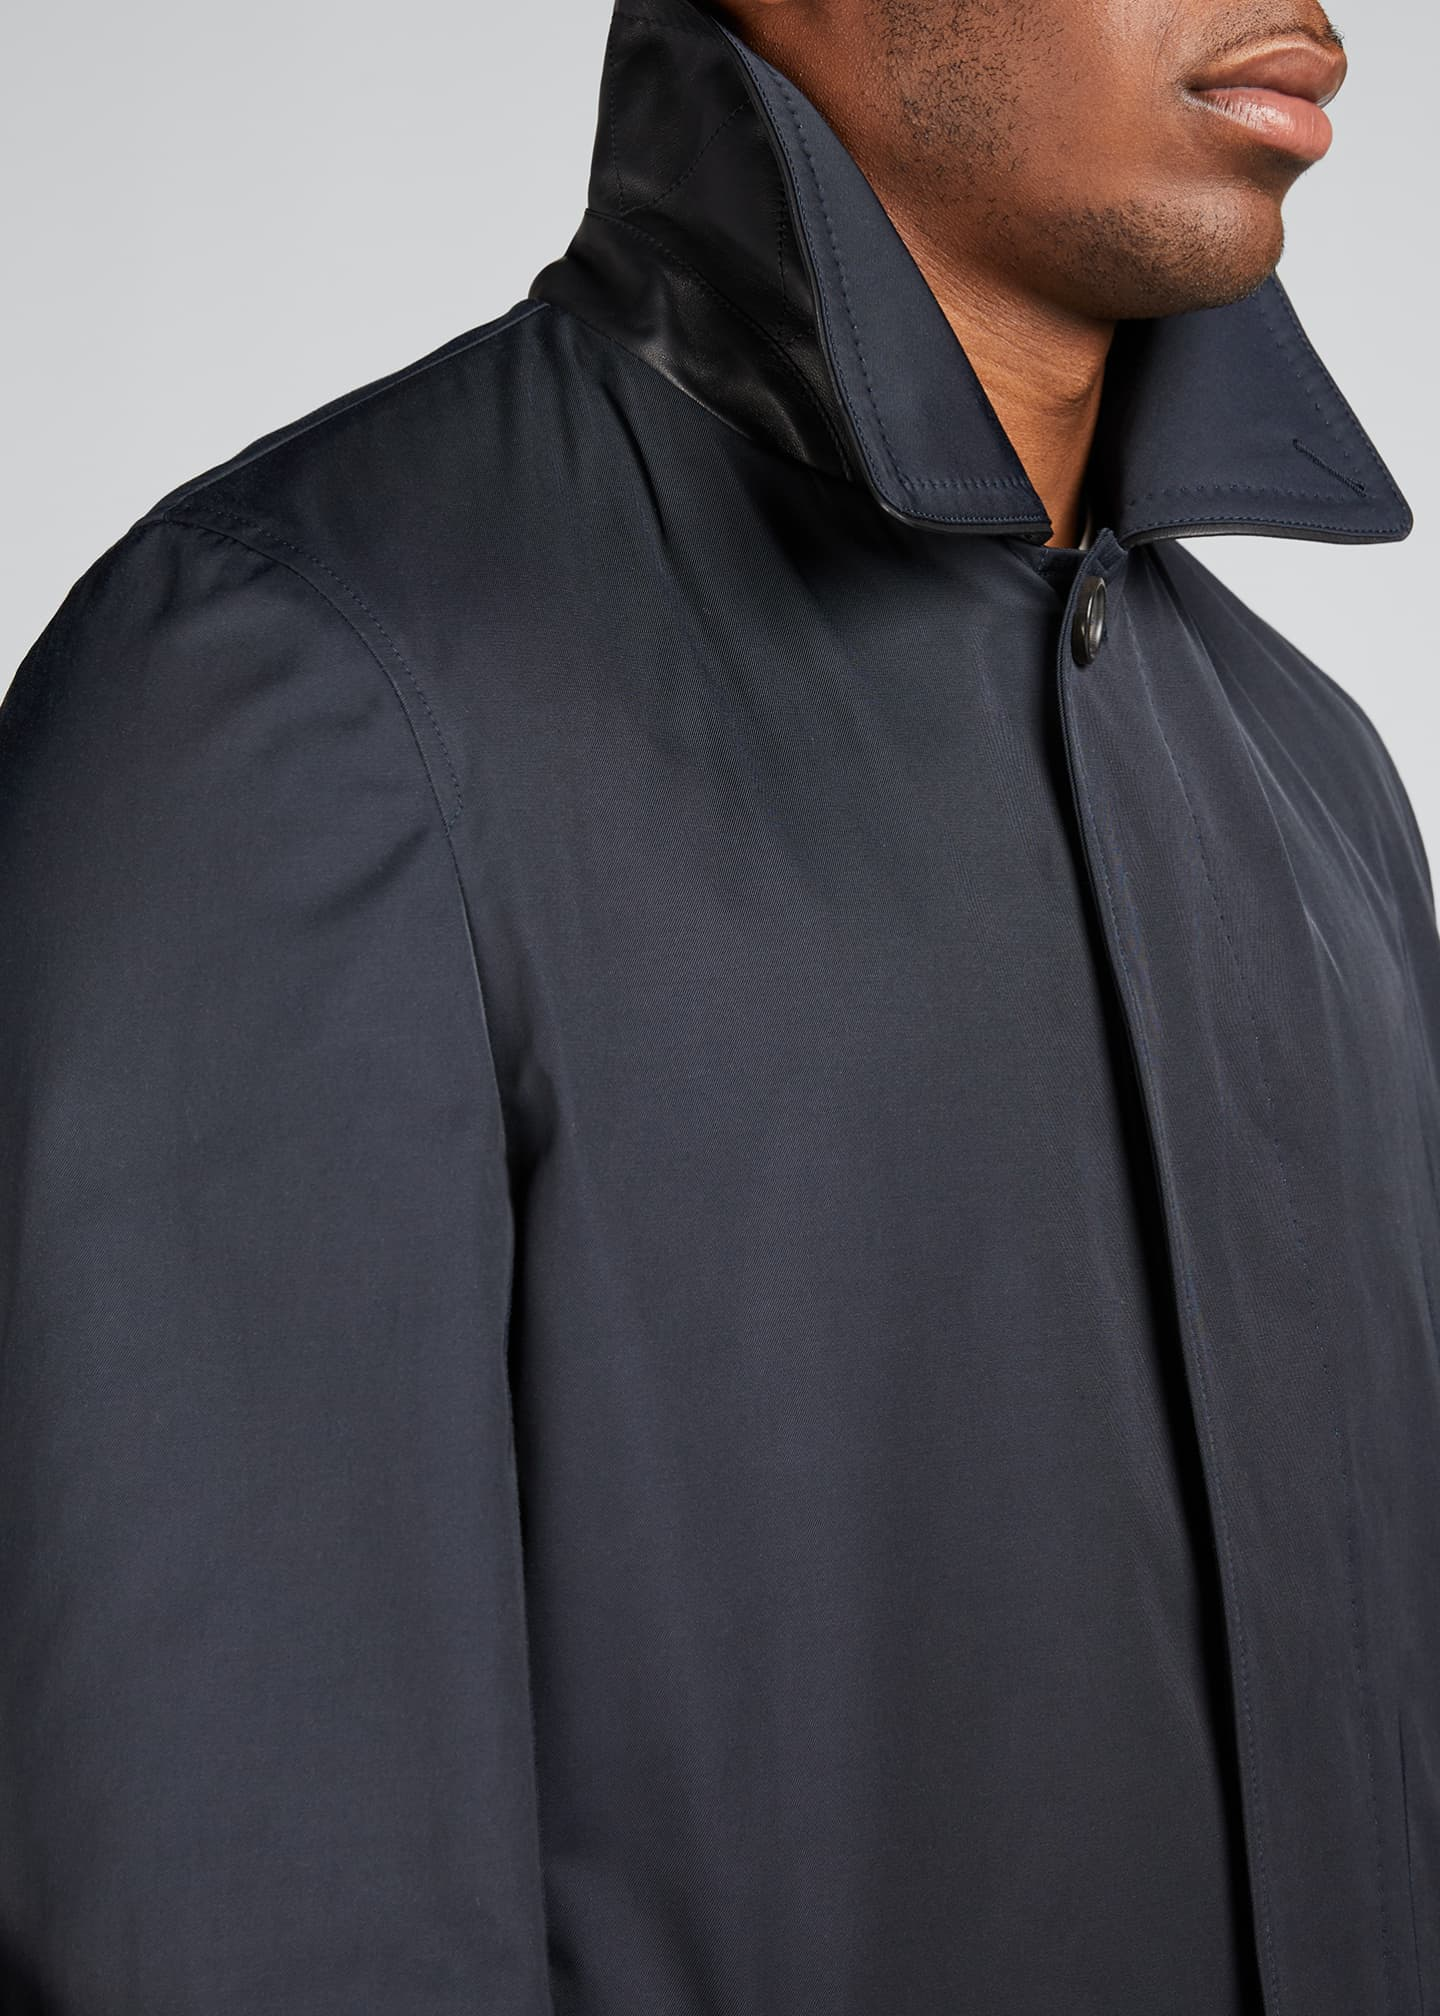 Image 4 of 5: Men's Trench Coat